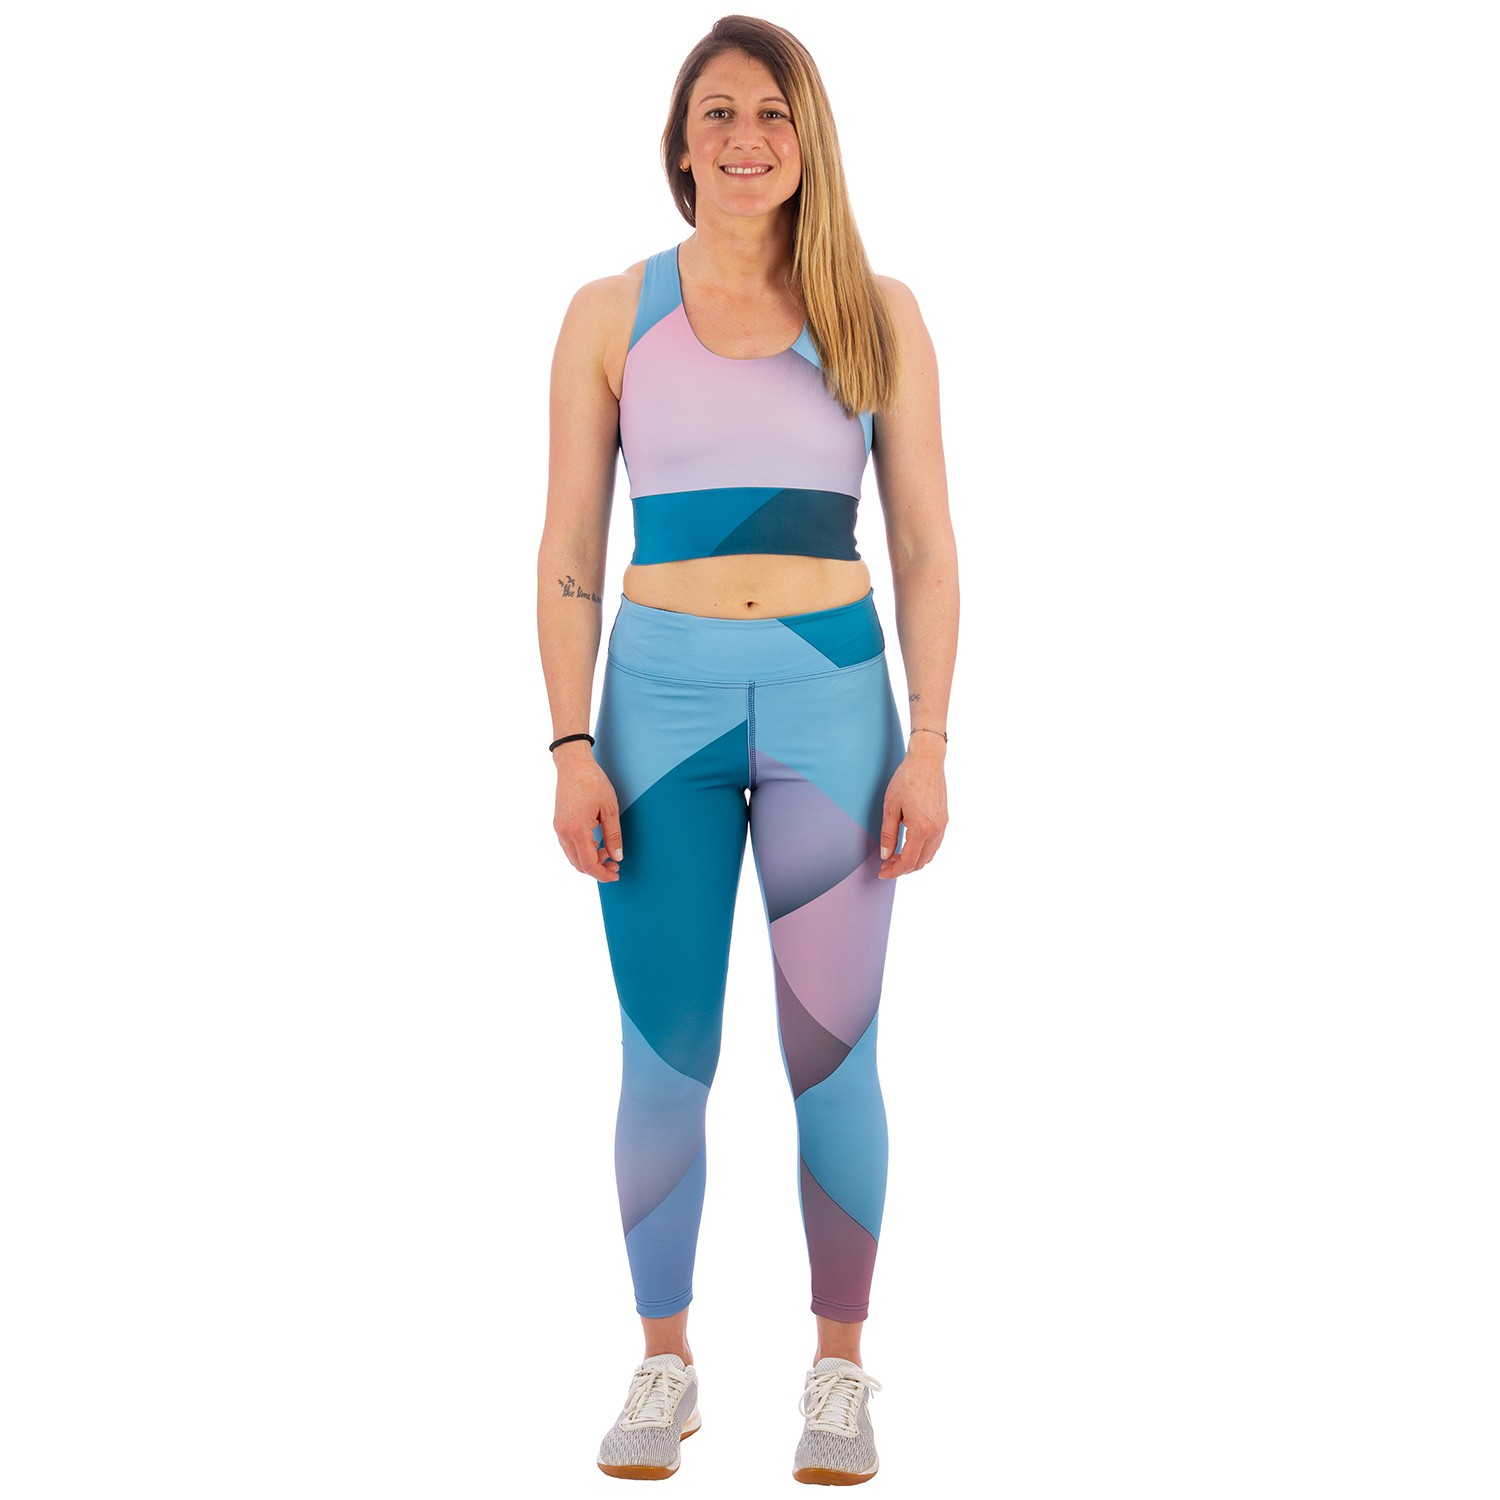 STOAK SUNRISE - SUNRISE Package Top + Leggings